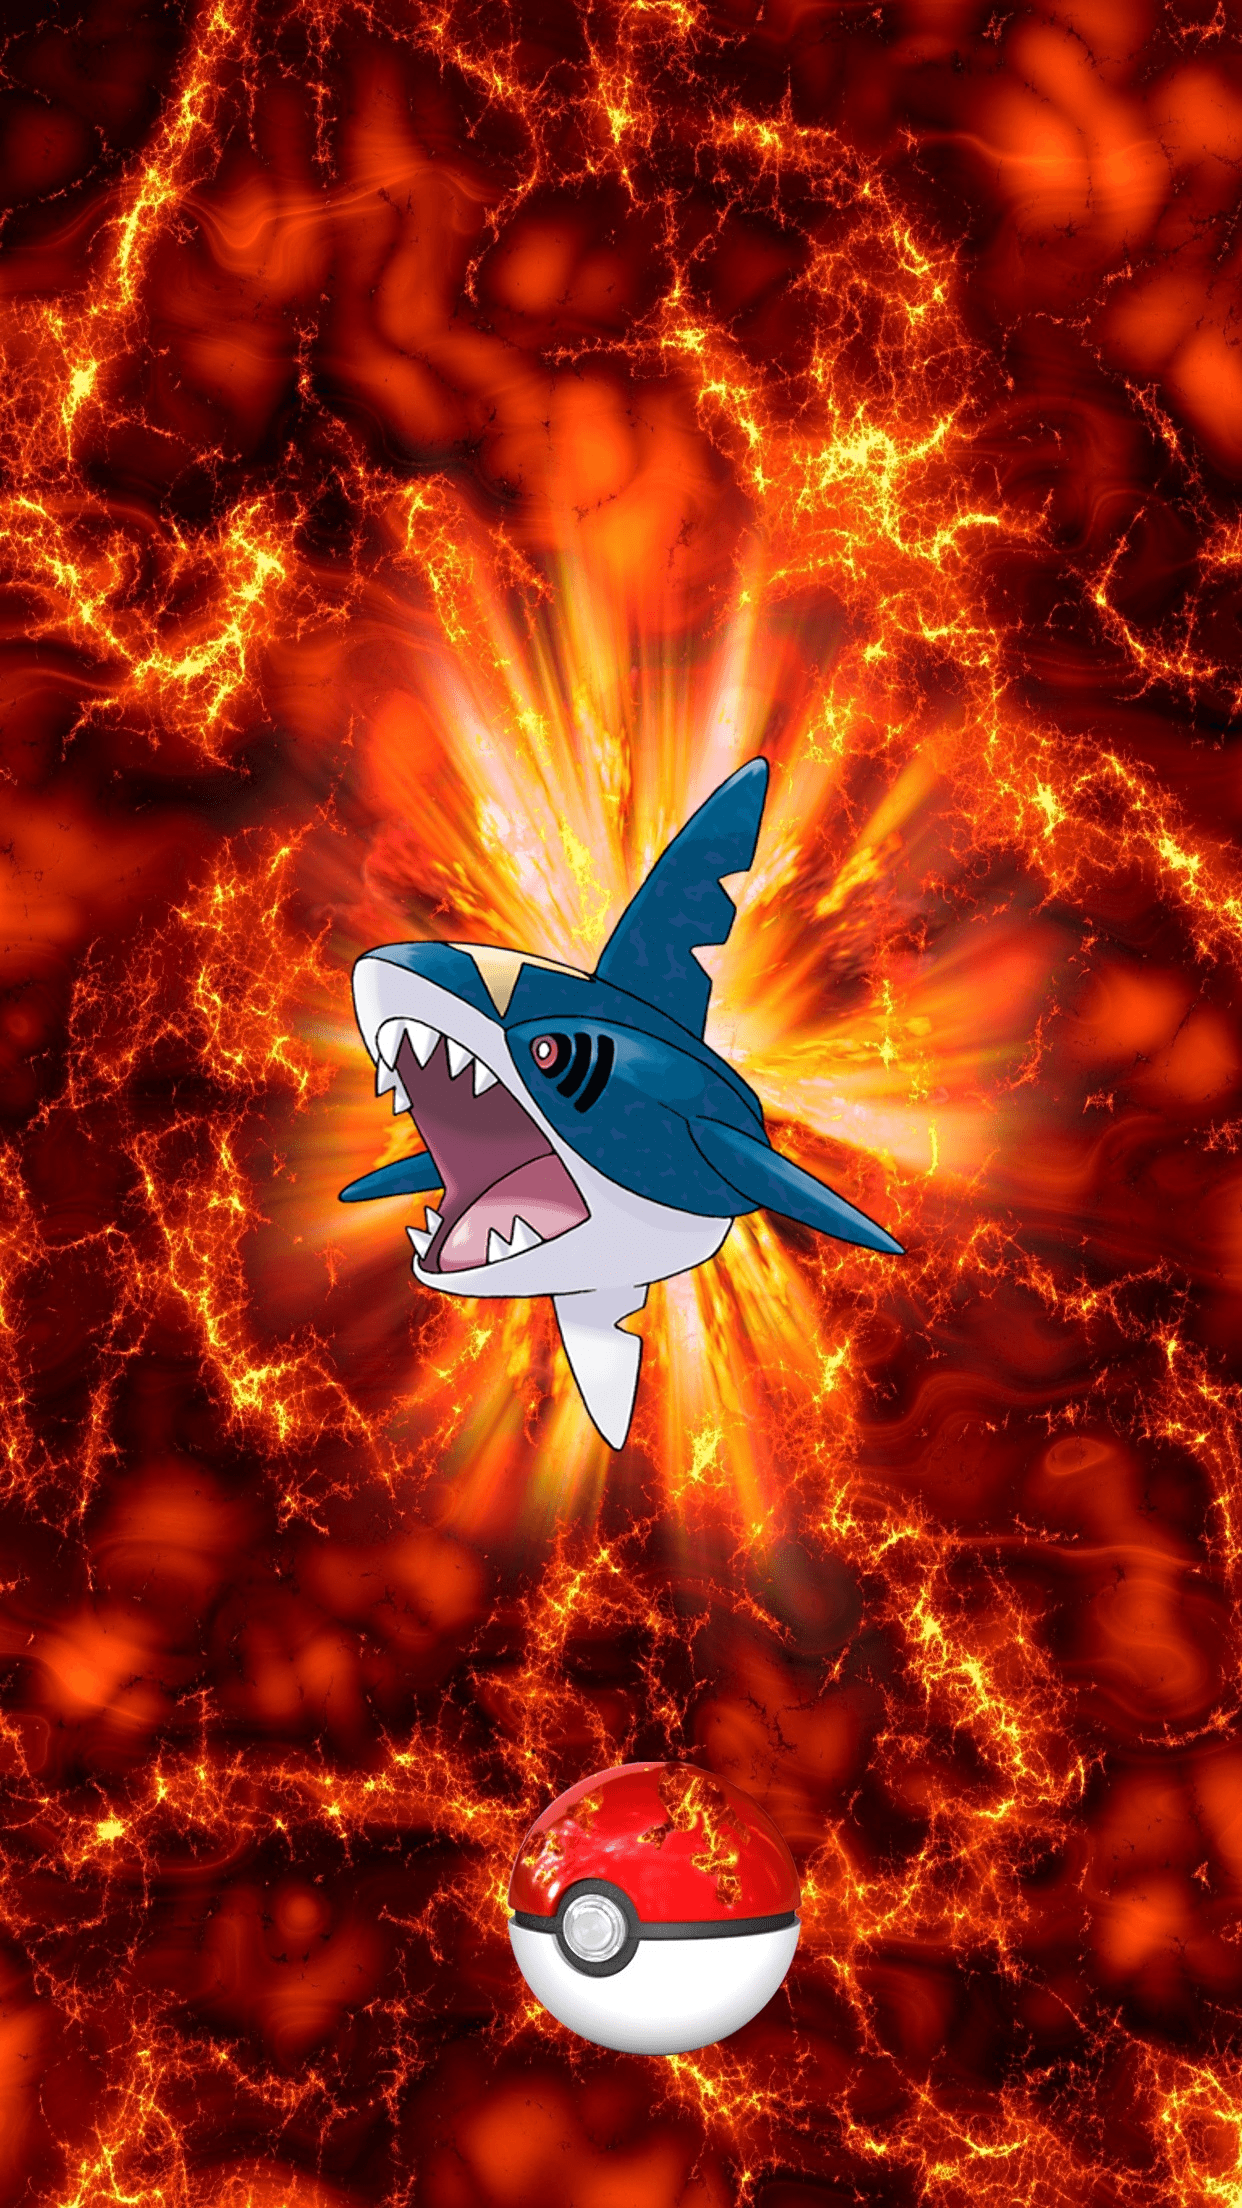 319 Fire Pokeball Sharpedo Samehader 9 Carvanha